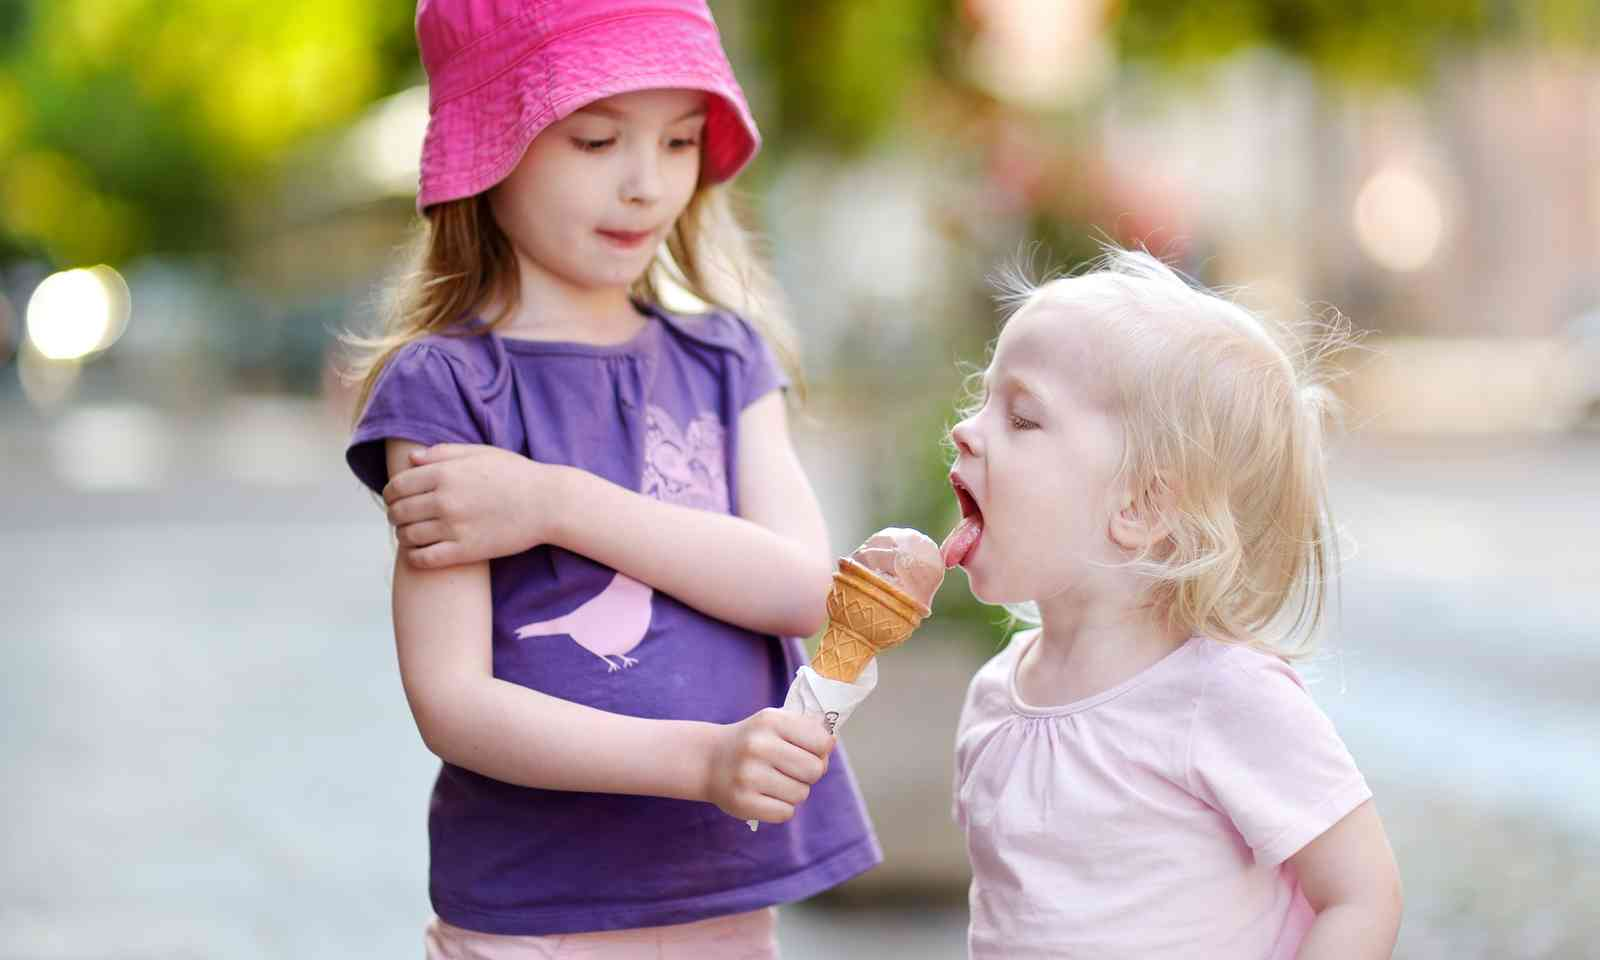 Sisters eating ice cream (Dreamstime)